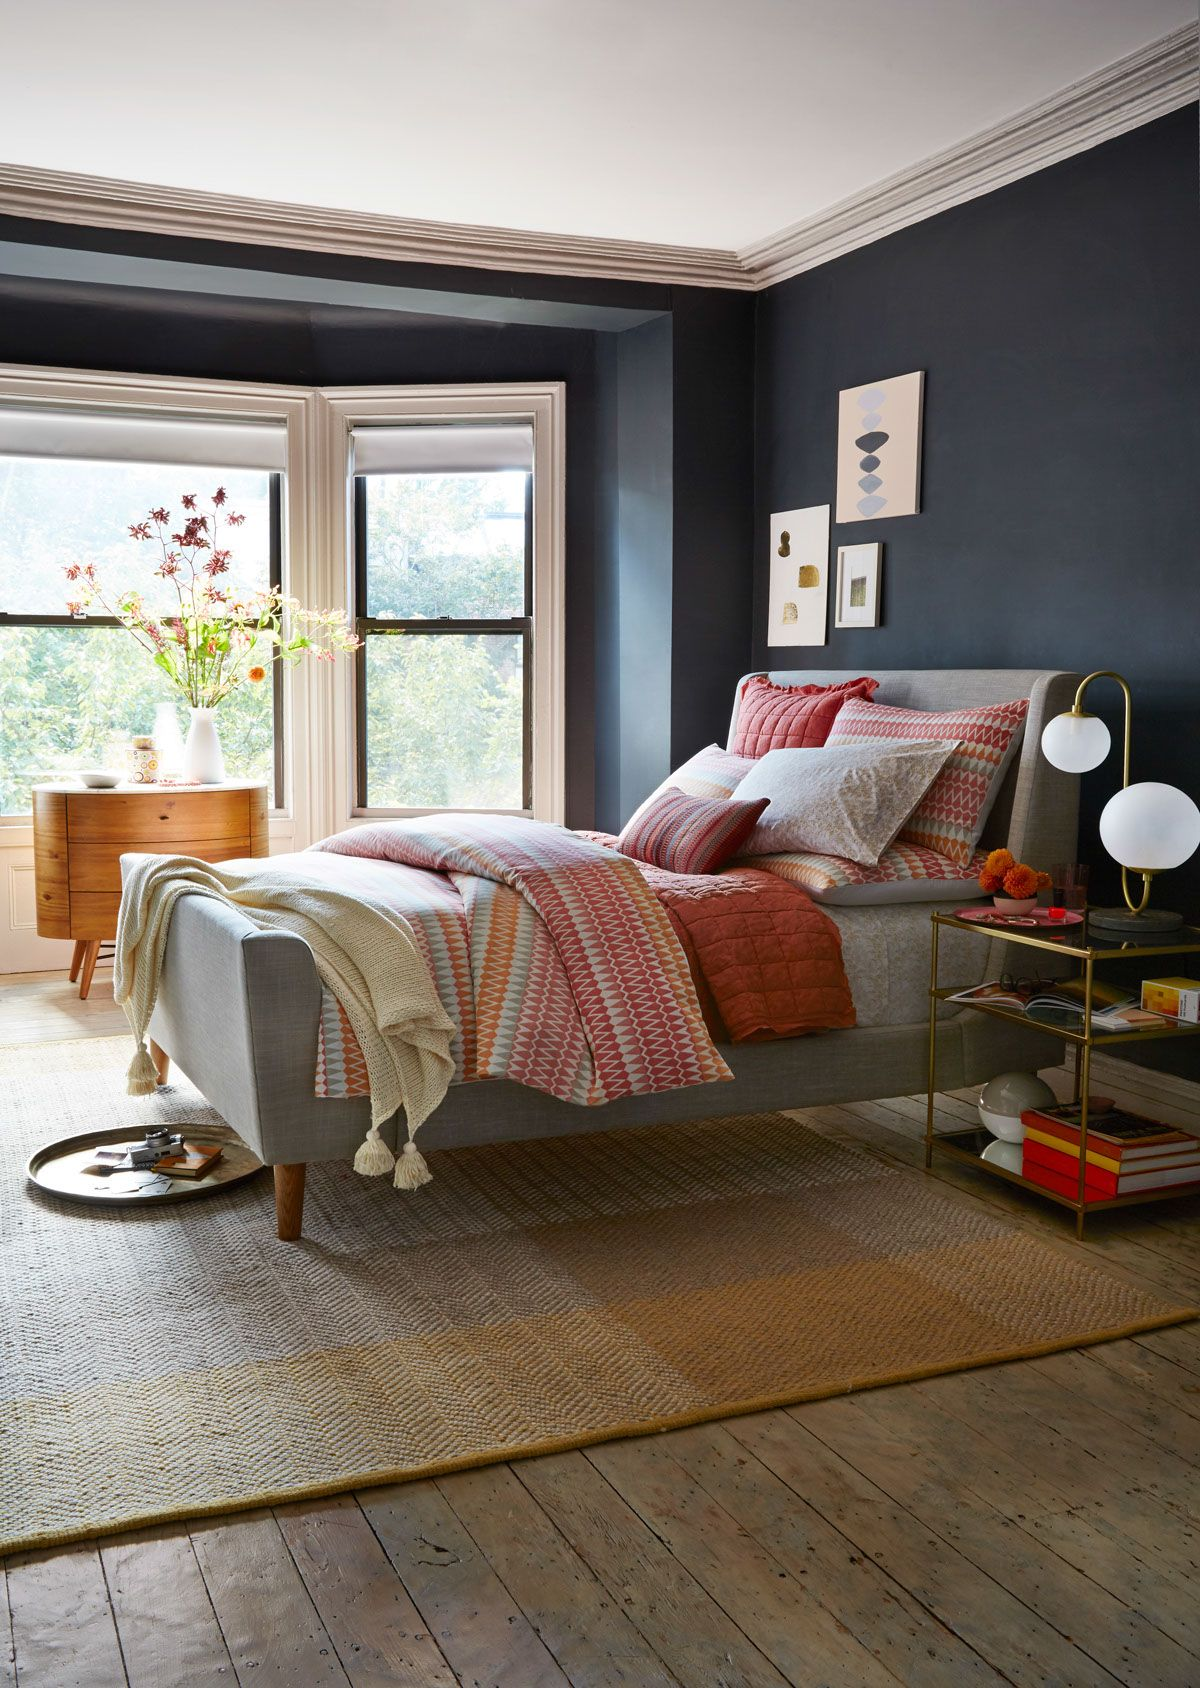 Building A Dream House Navy Bedrooms